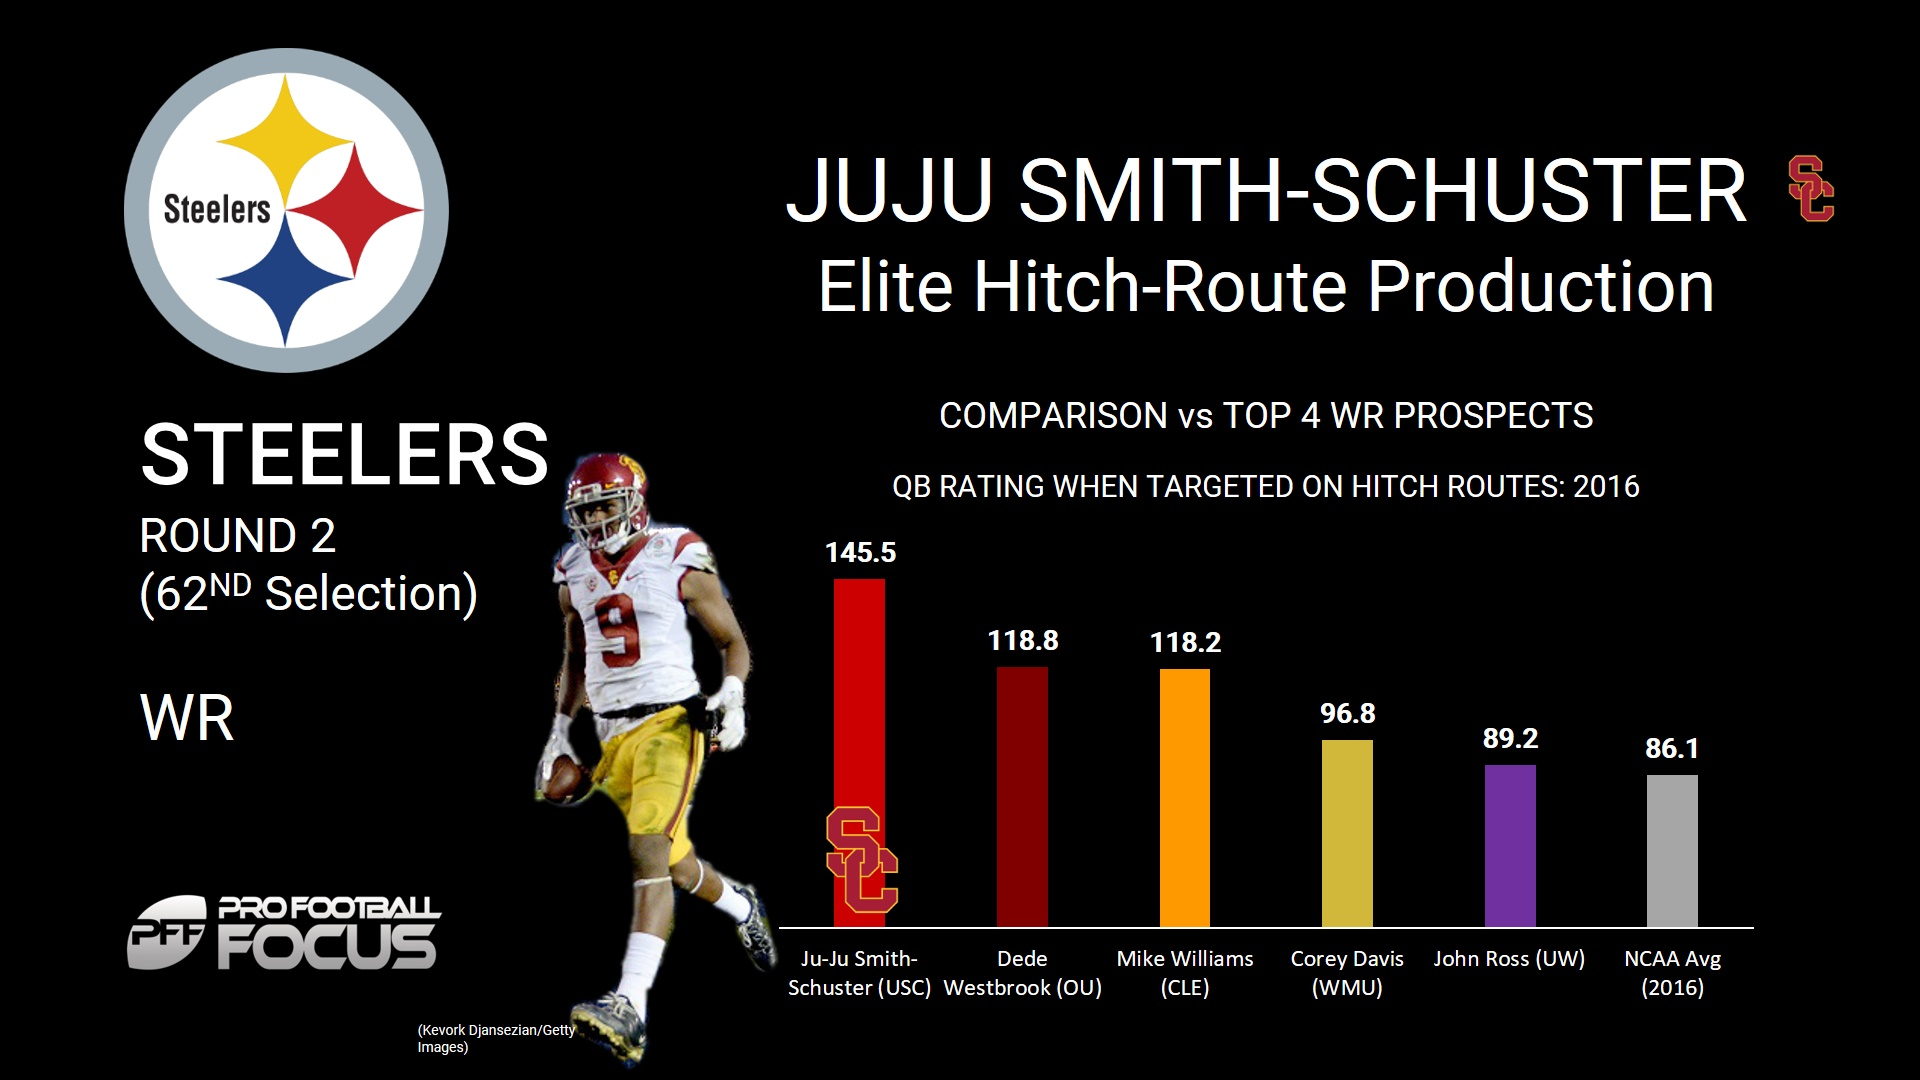 JuJu Smith-Schuster selected by Pittsburgh Steelers with No. 62 pick